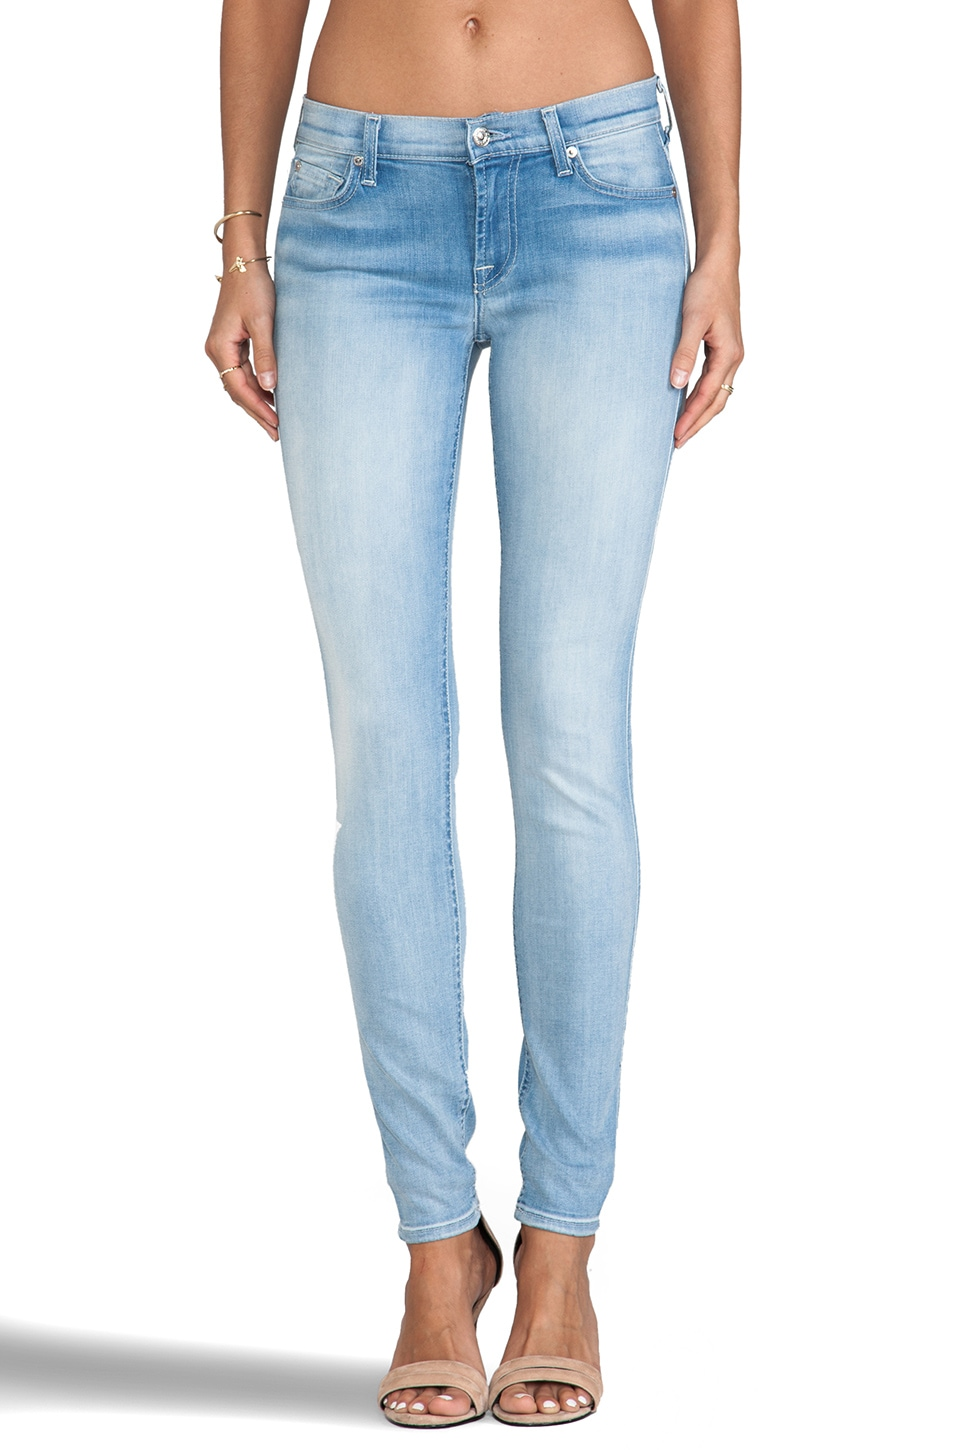 7 For All Mankind Skinny in Sky Breeze Blue